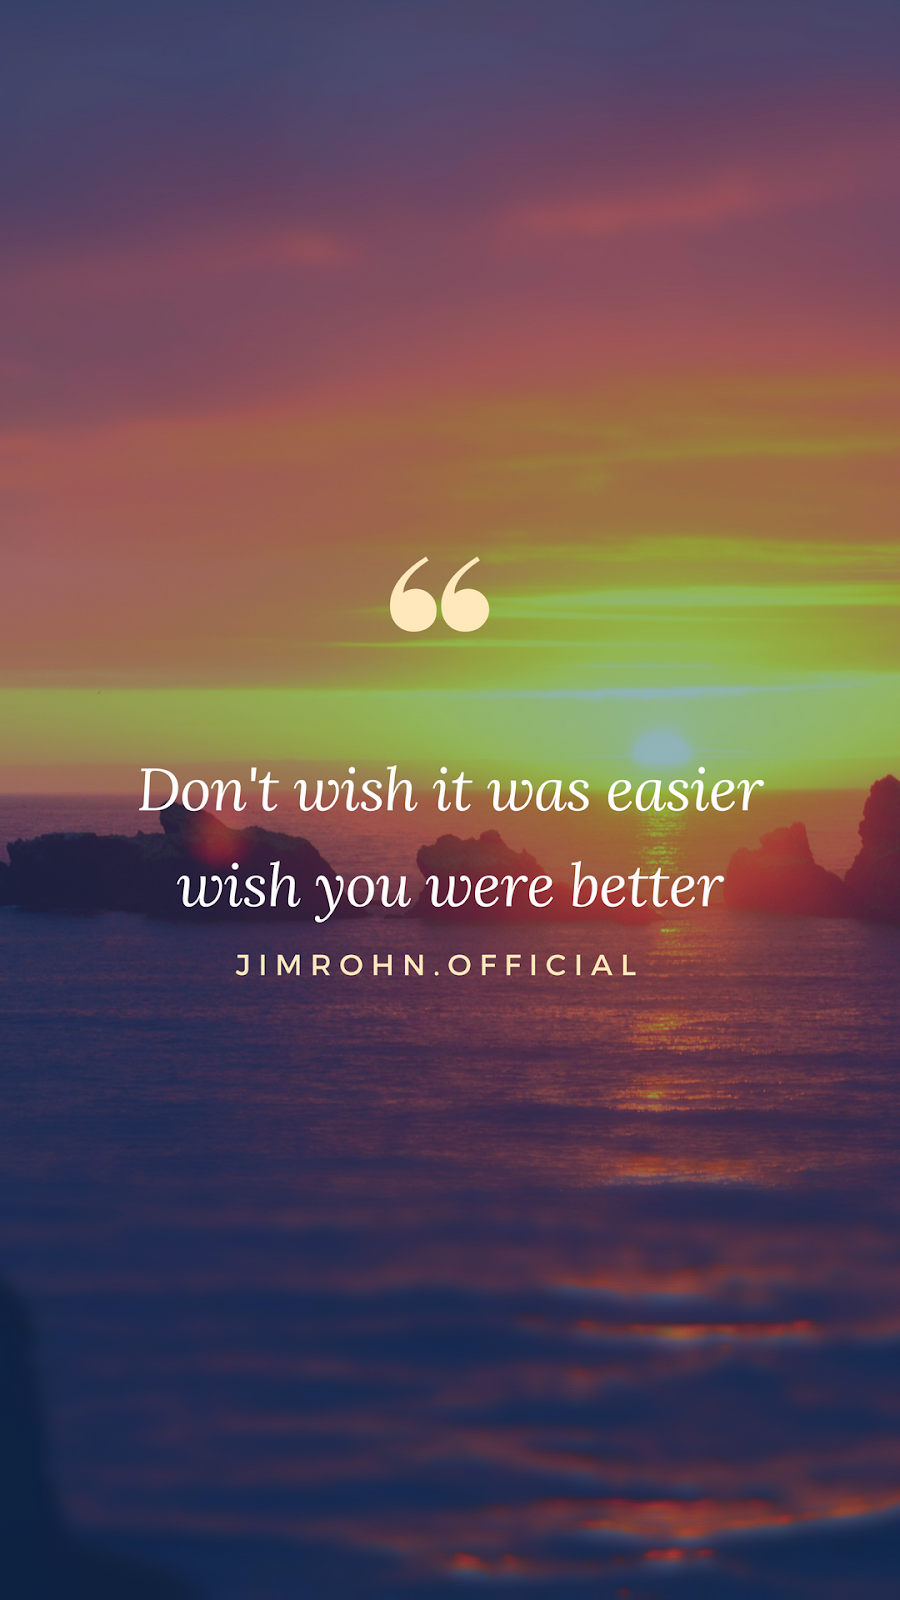 Don't wish it was easier wish you were better. Jim Rohn quotes